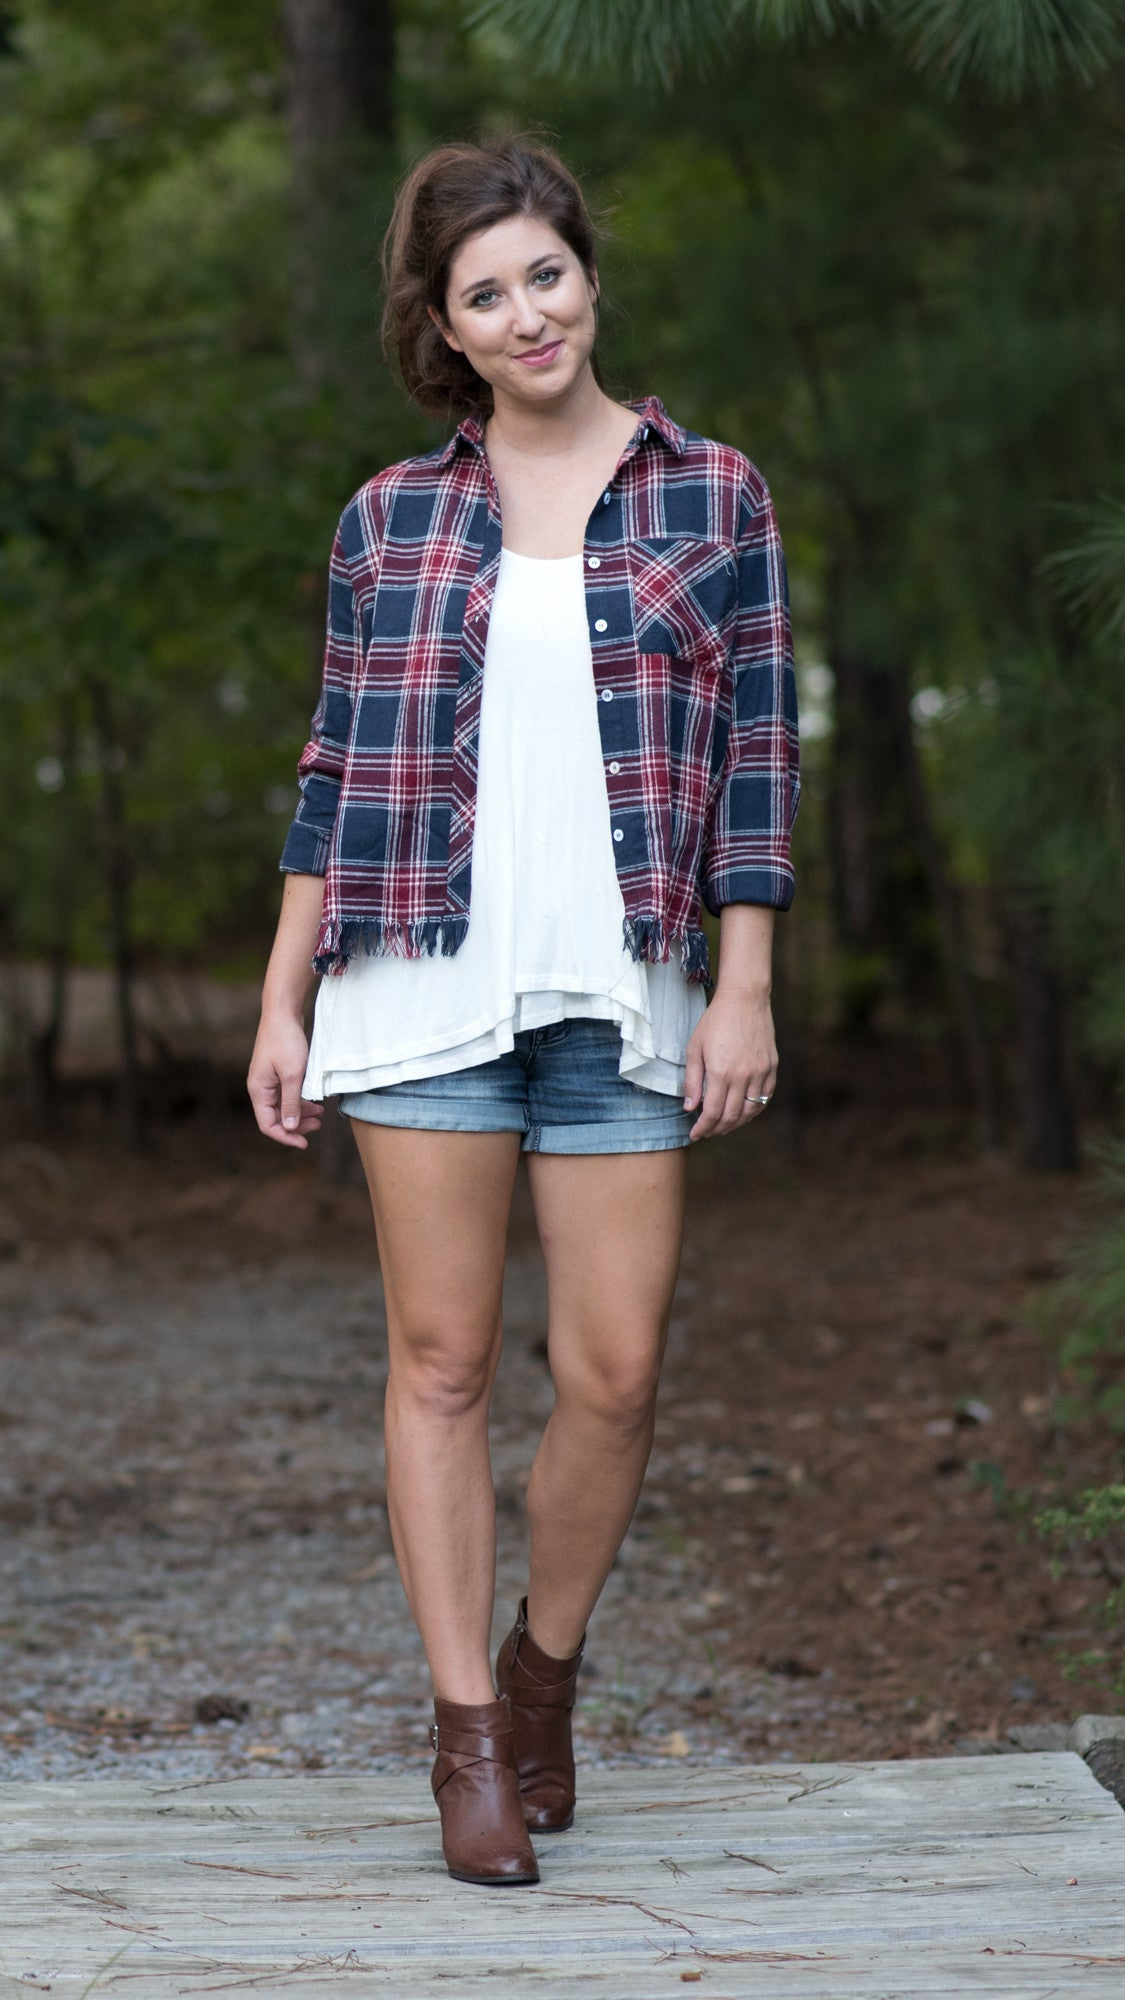 red and blue plaid shirt with fringe at hem